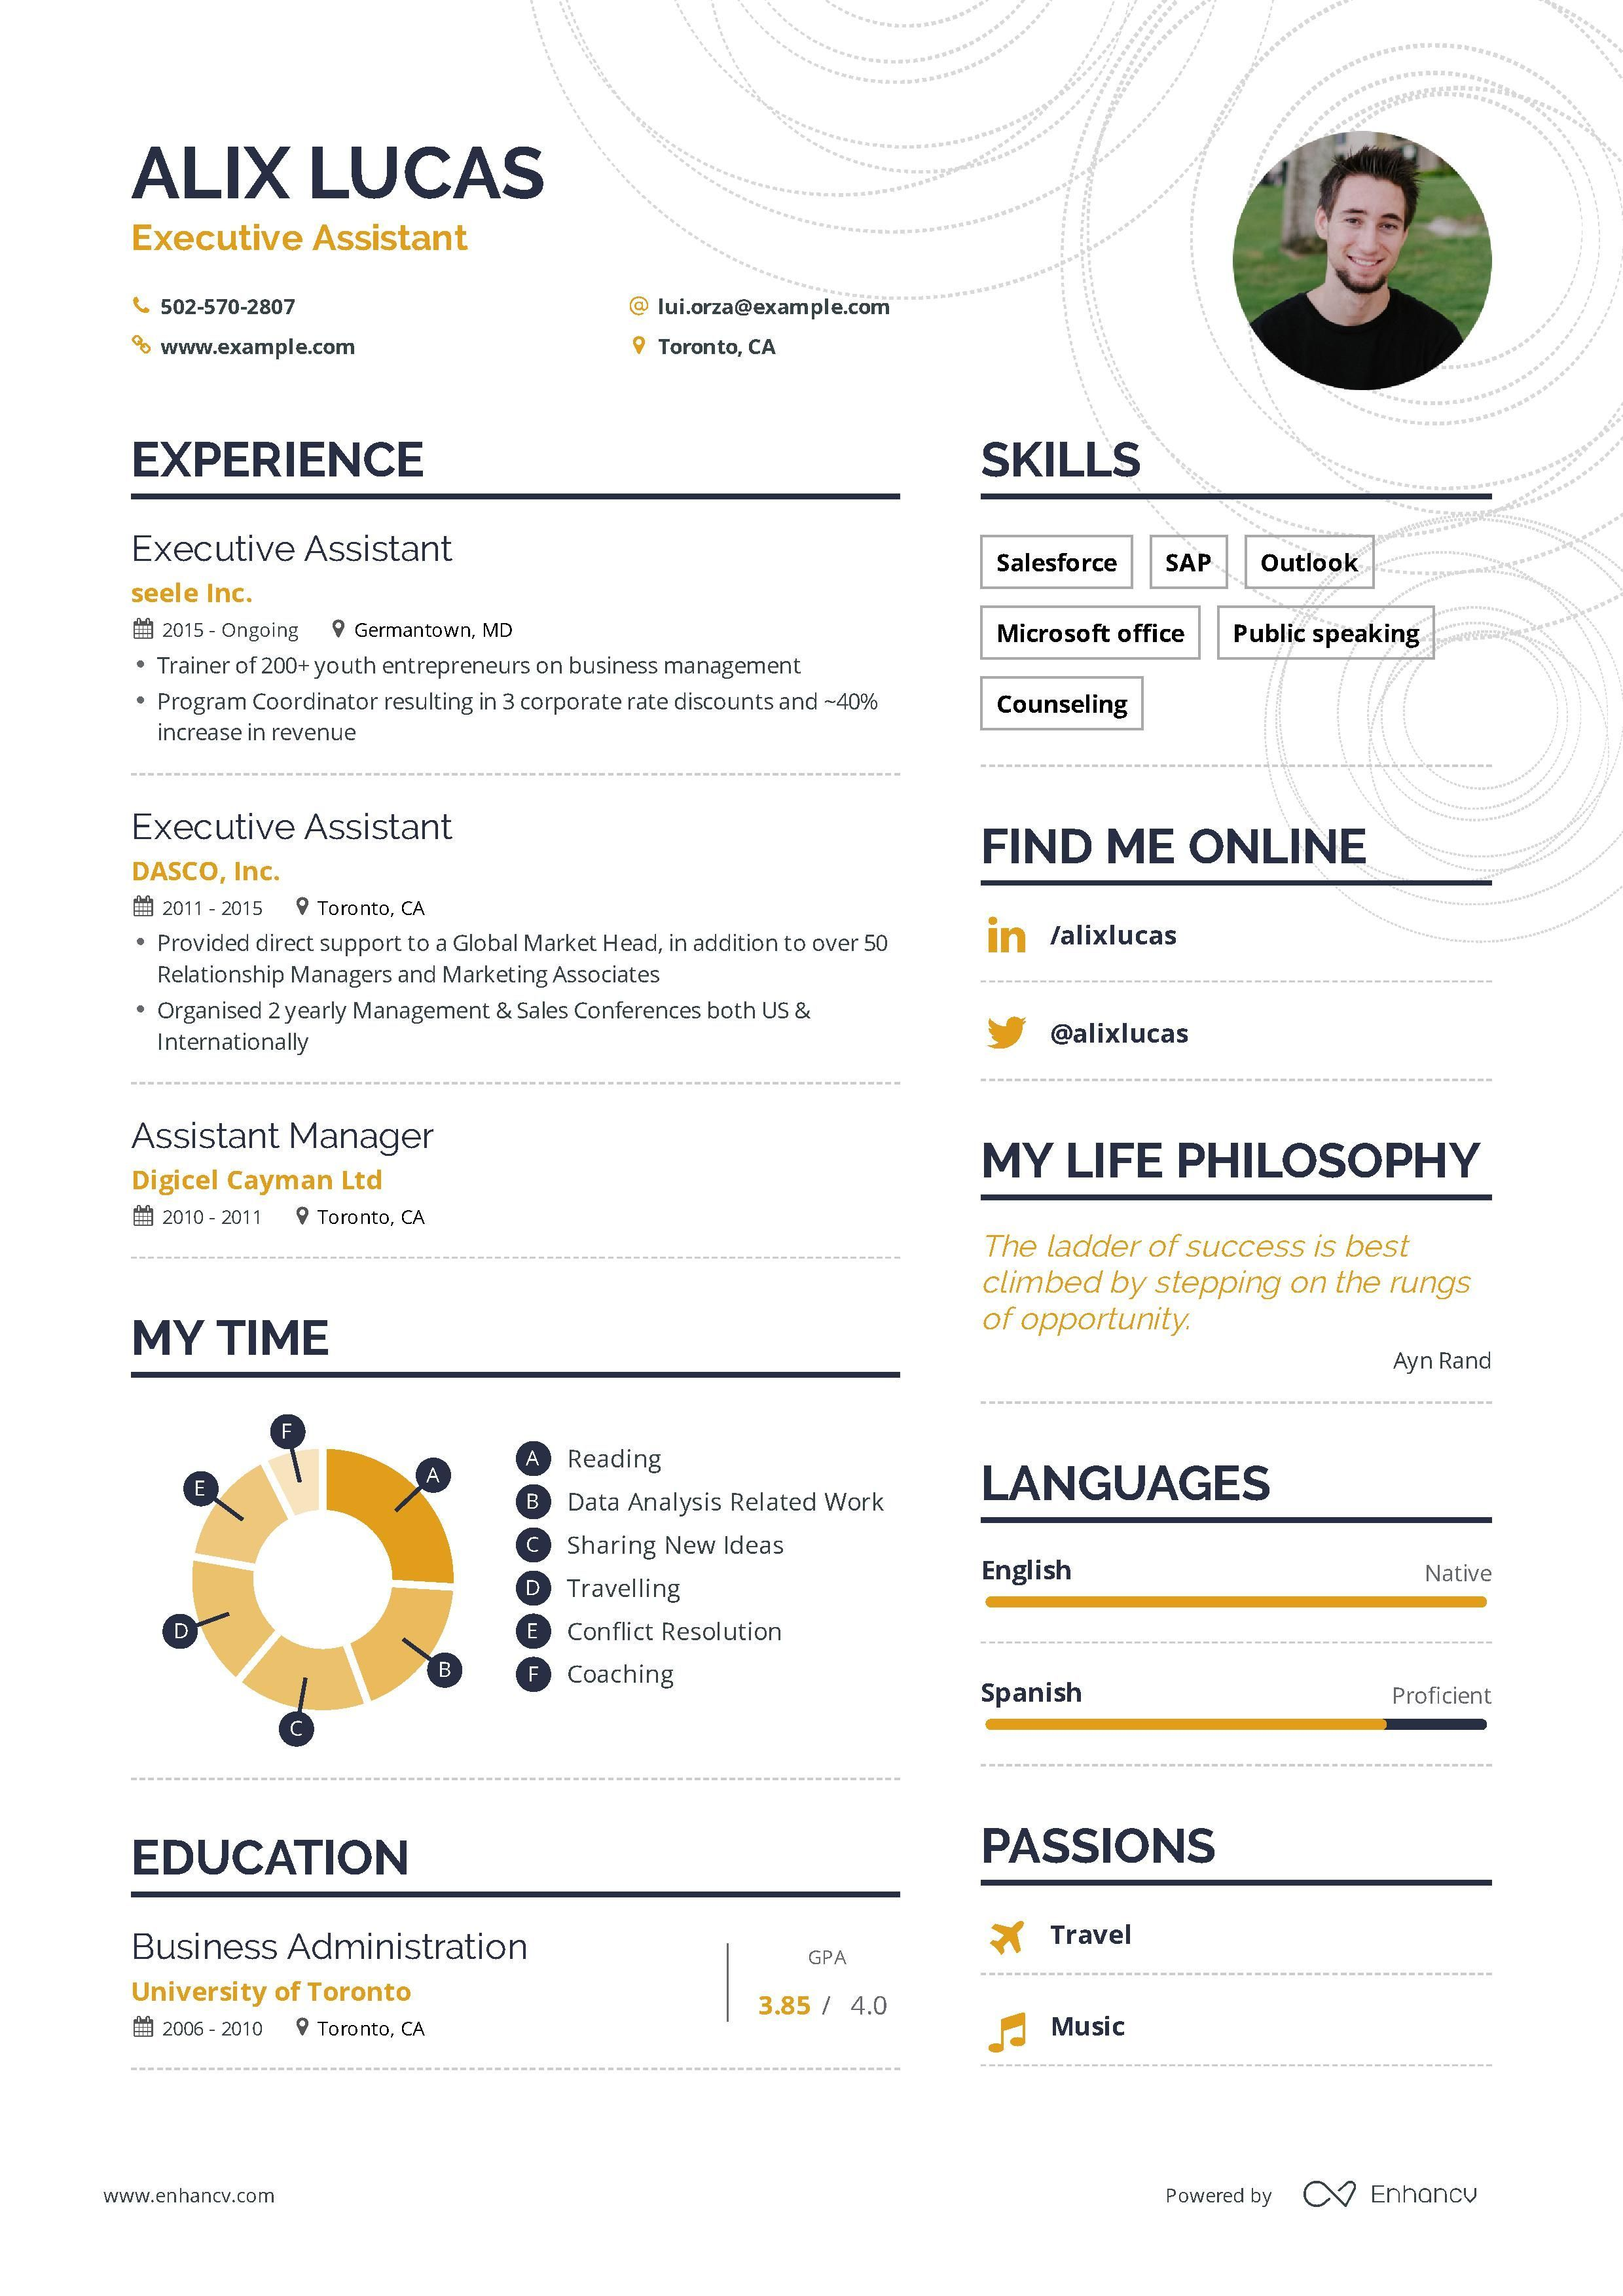 Executive Assistant Resume Example And Guide For 2019 Executive Resume Examples Executive Assistant Resume Example And Guide For 2019 The Ultimate Guide To